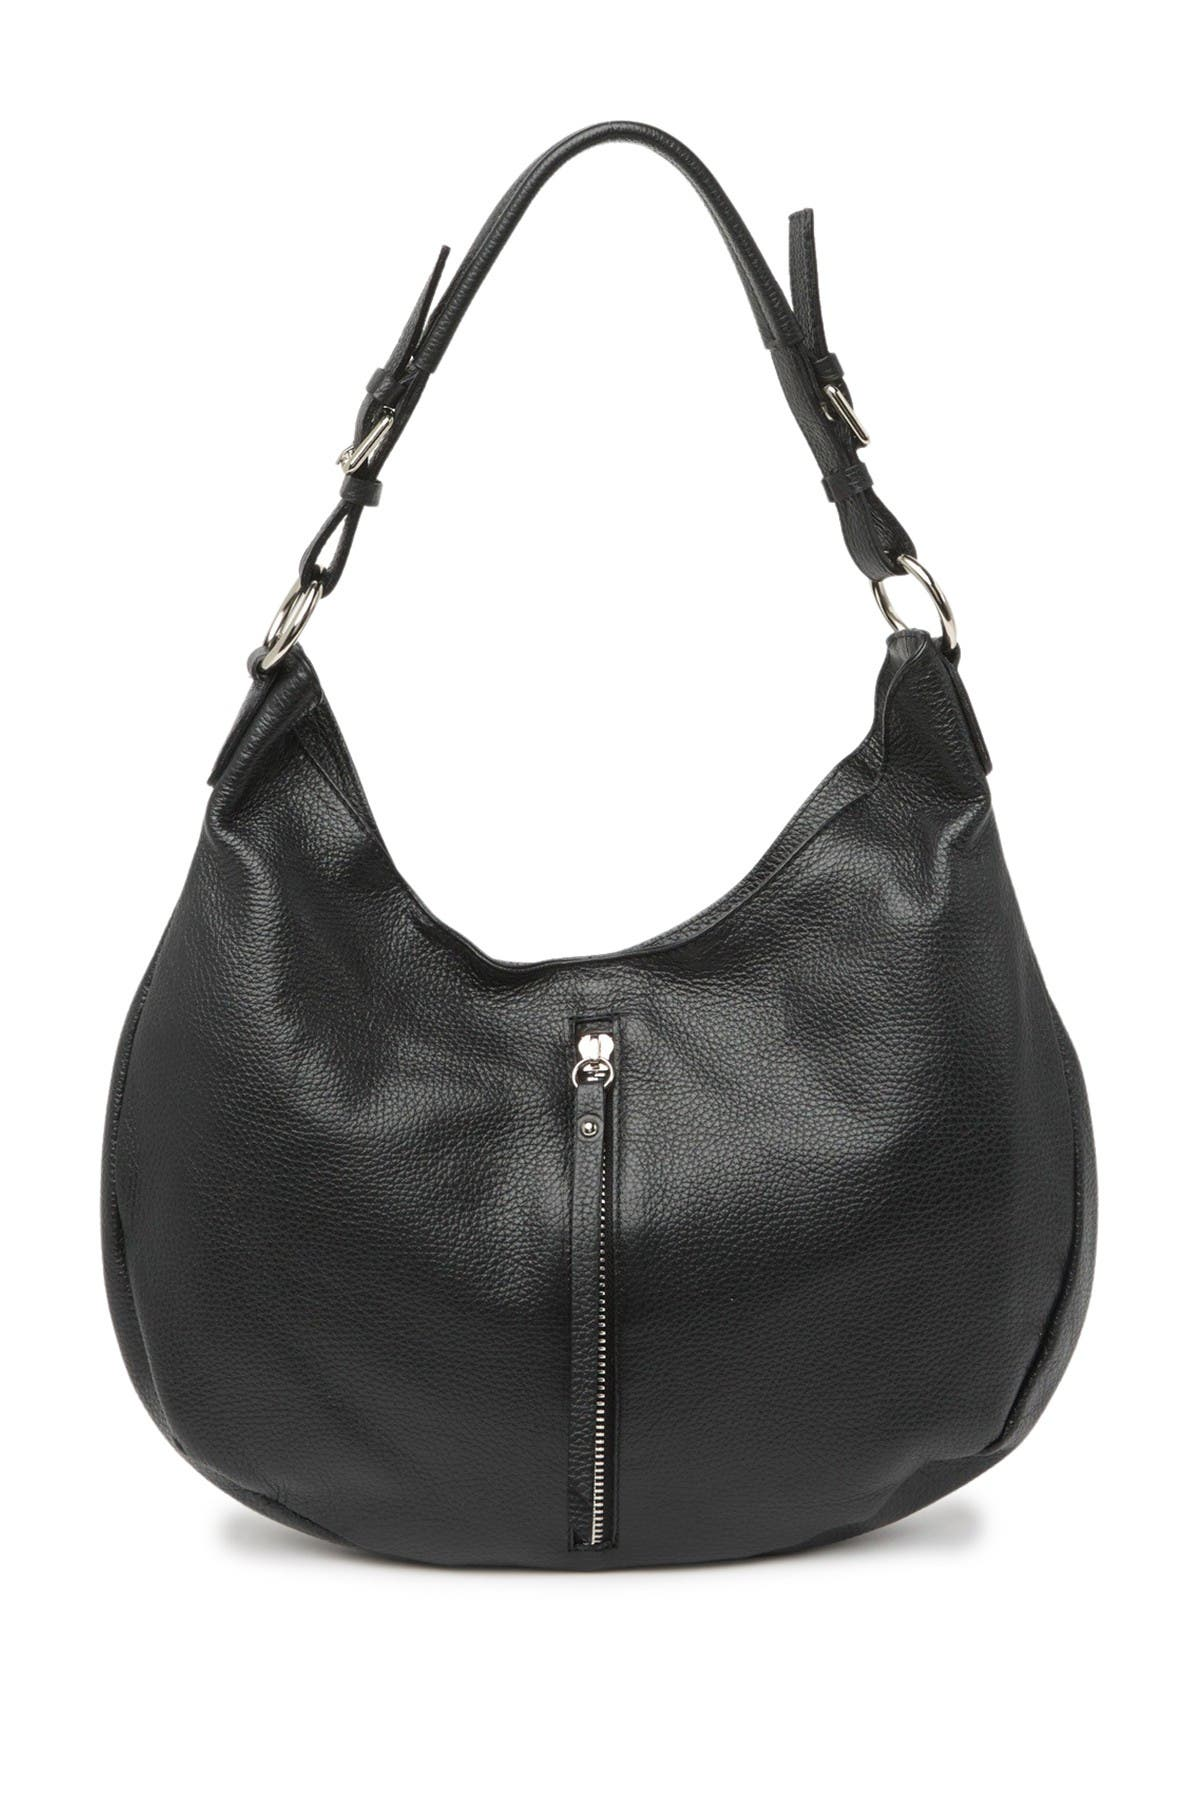 Image of Roberta M Front Zip Shoulder Bag